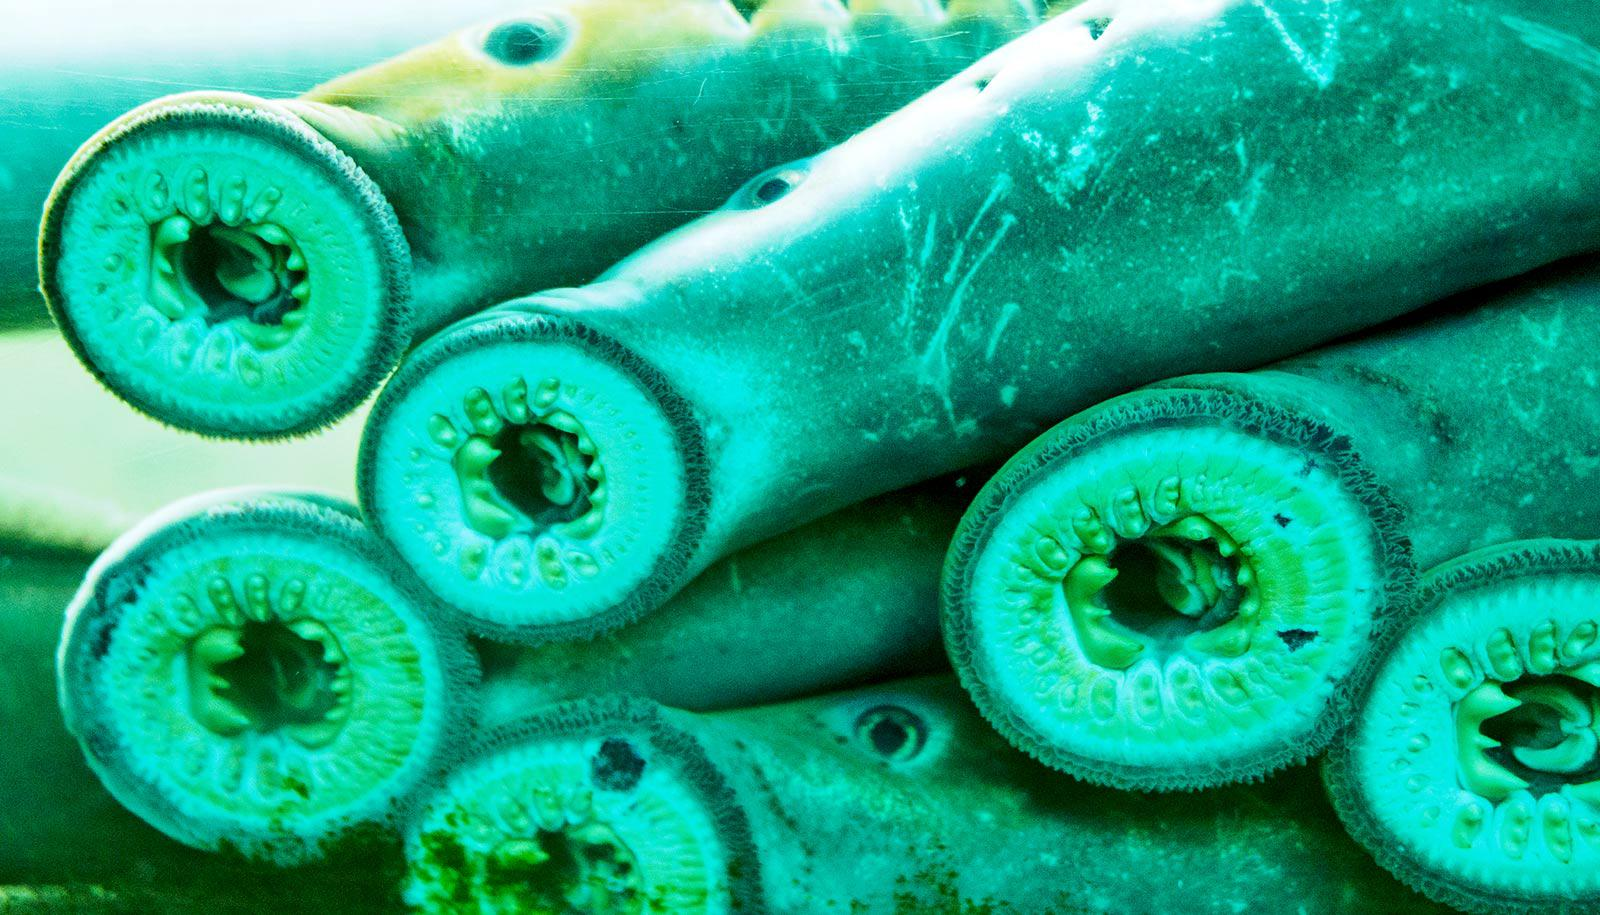 Lampreys on glass